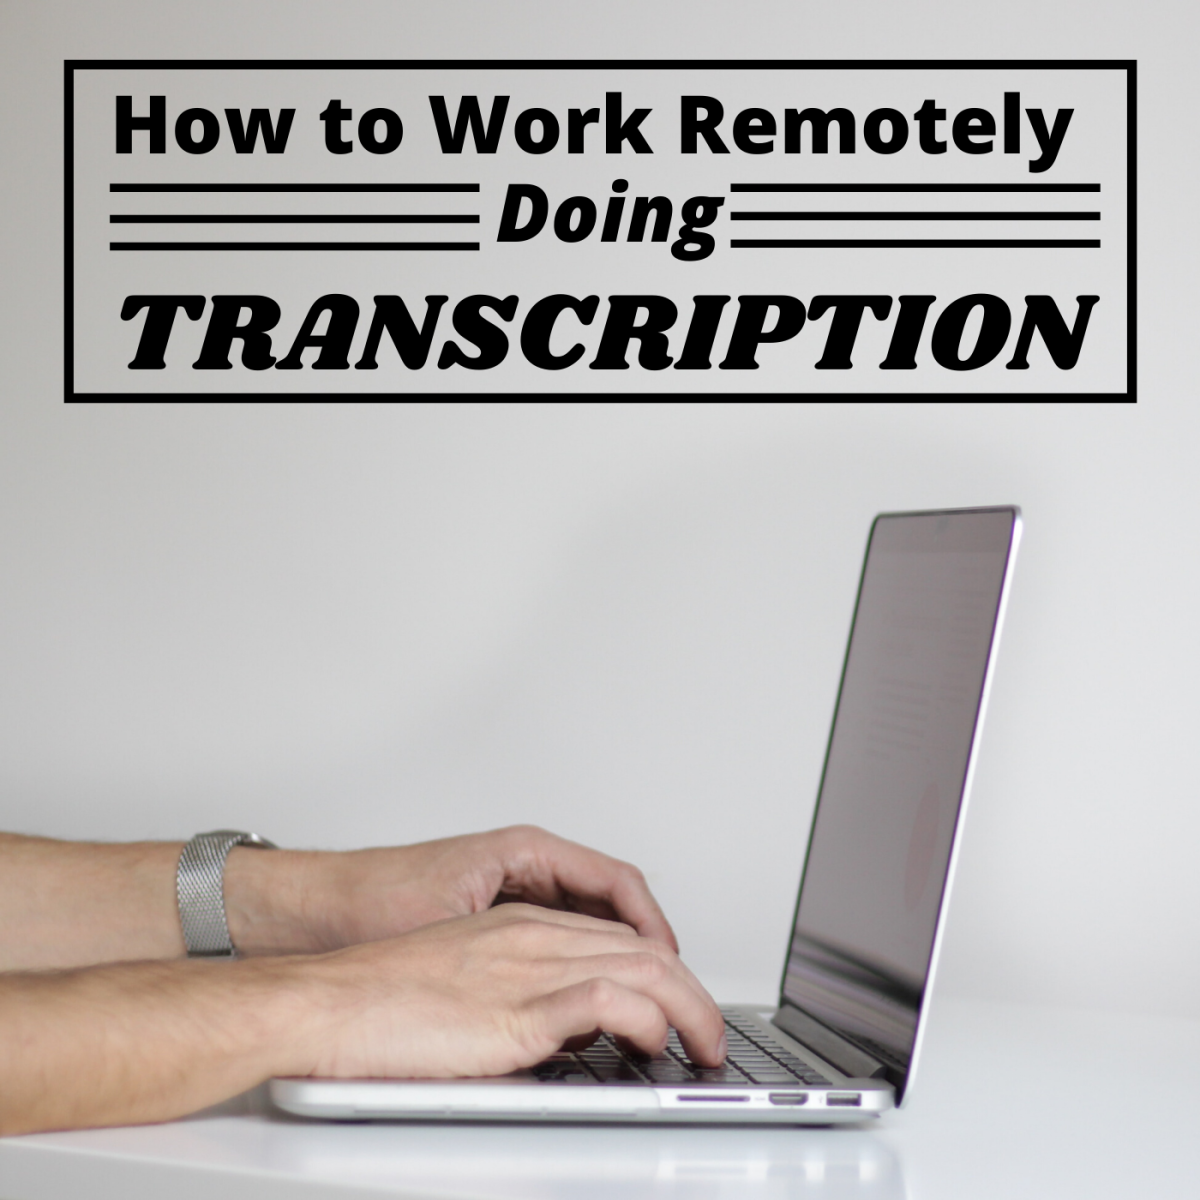 You can earn income from home on your own schedule by transcribing audio files for transcription companies online.